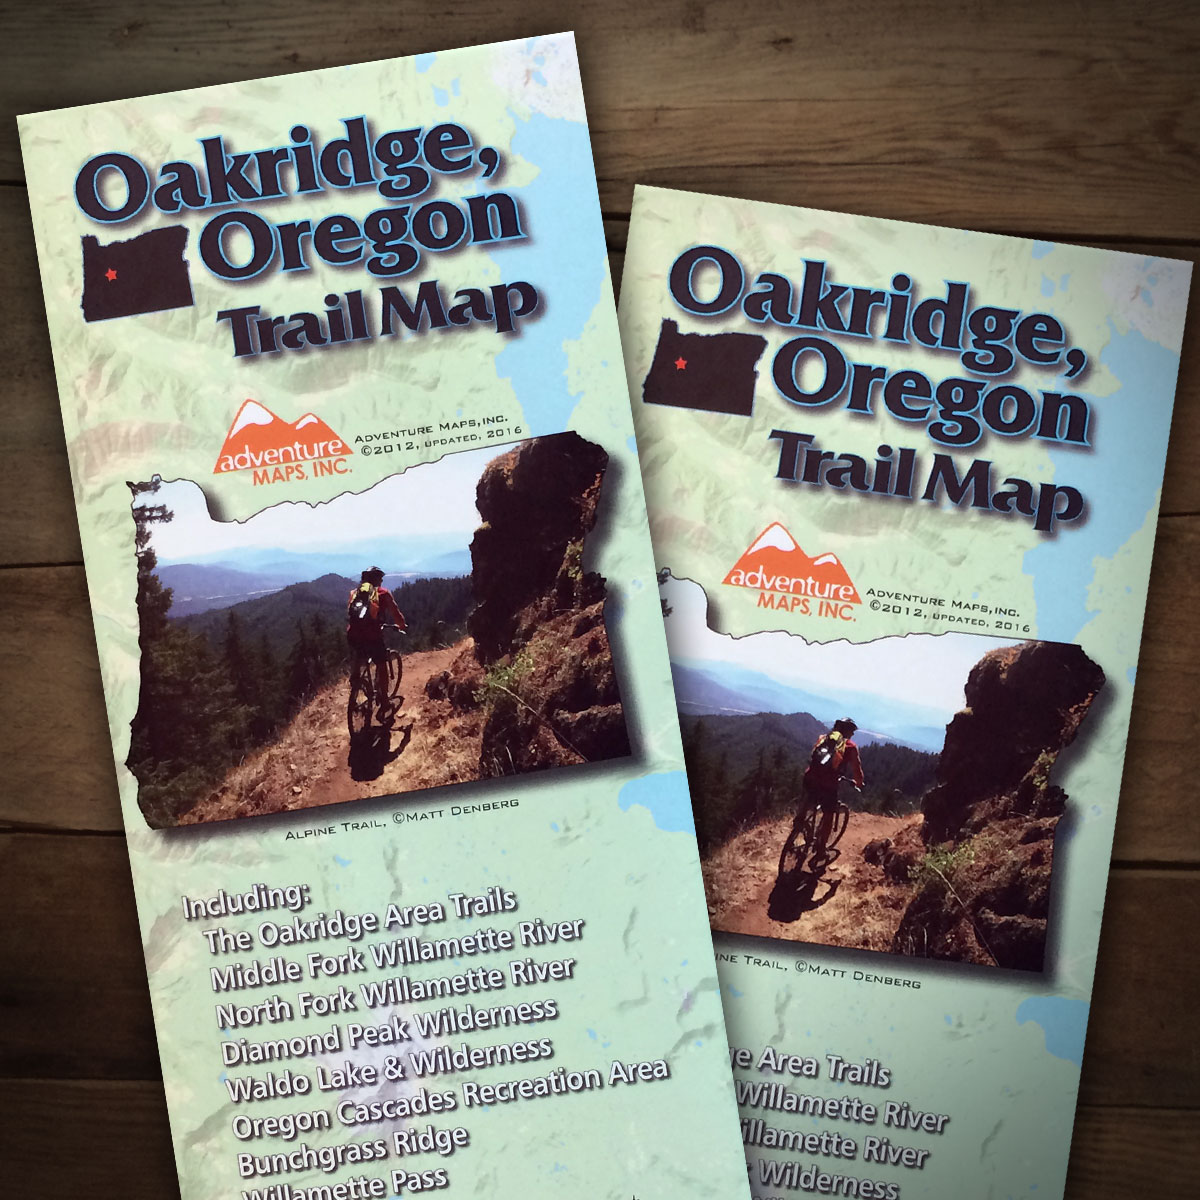 Oakridge Oregon Trail Map